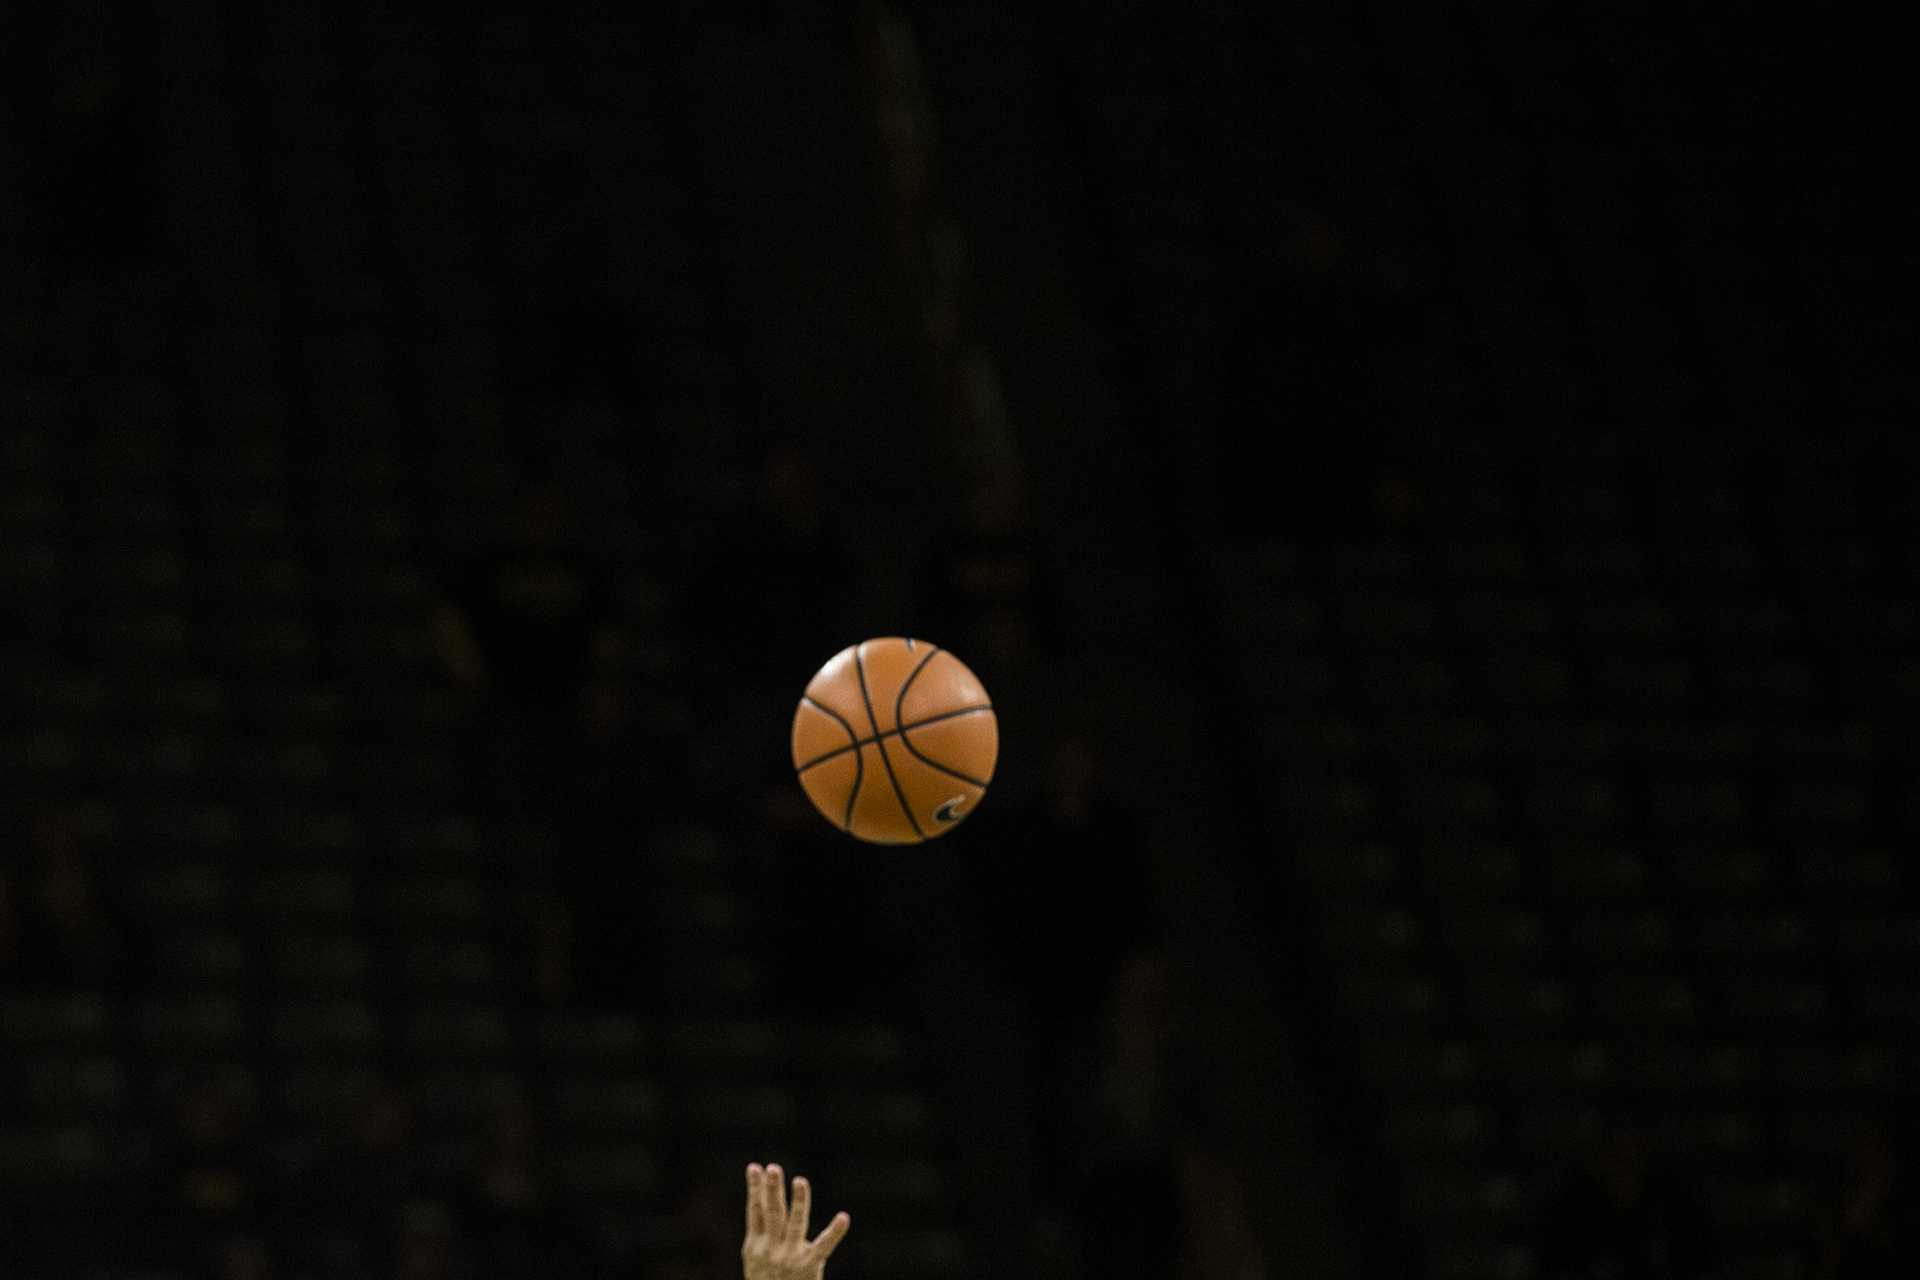 The referee throws the ball into the air during tip-off of the NCAA basketball game between Iowa and Michigan at Carver-Hawkeye Arena on Tuesday, Jan. 2, 2017. The Hawkeyes fell to the Wolverines 75-68. (Ben Allan Smith/The Daily Iowan)